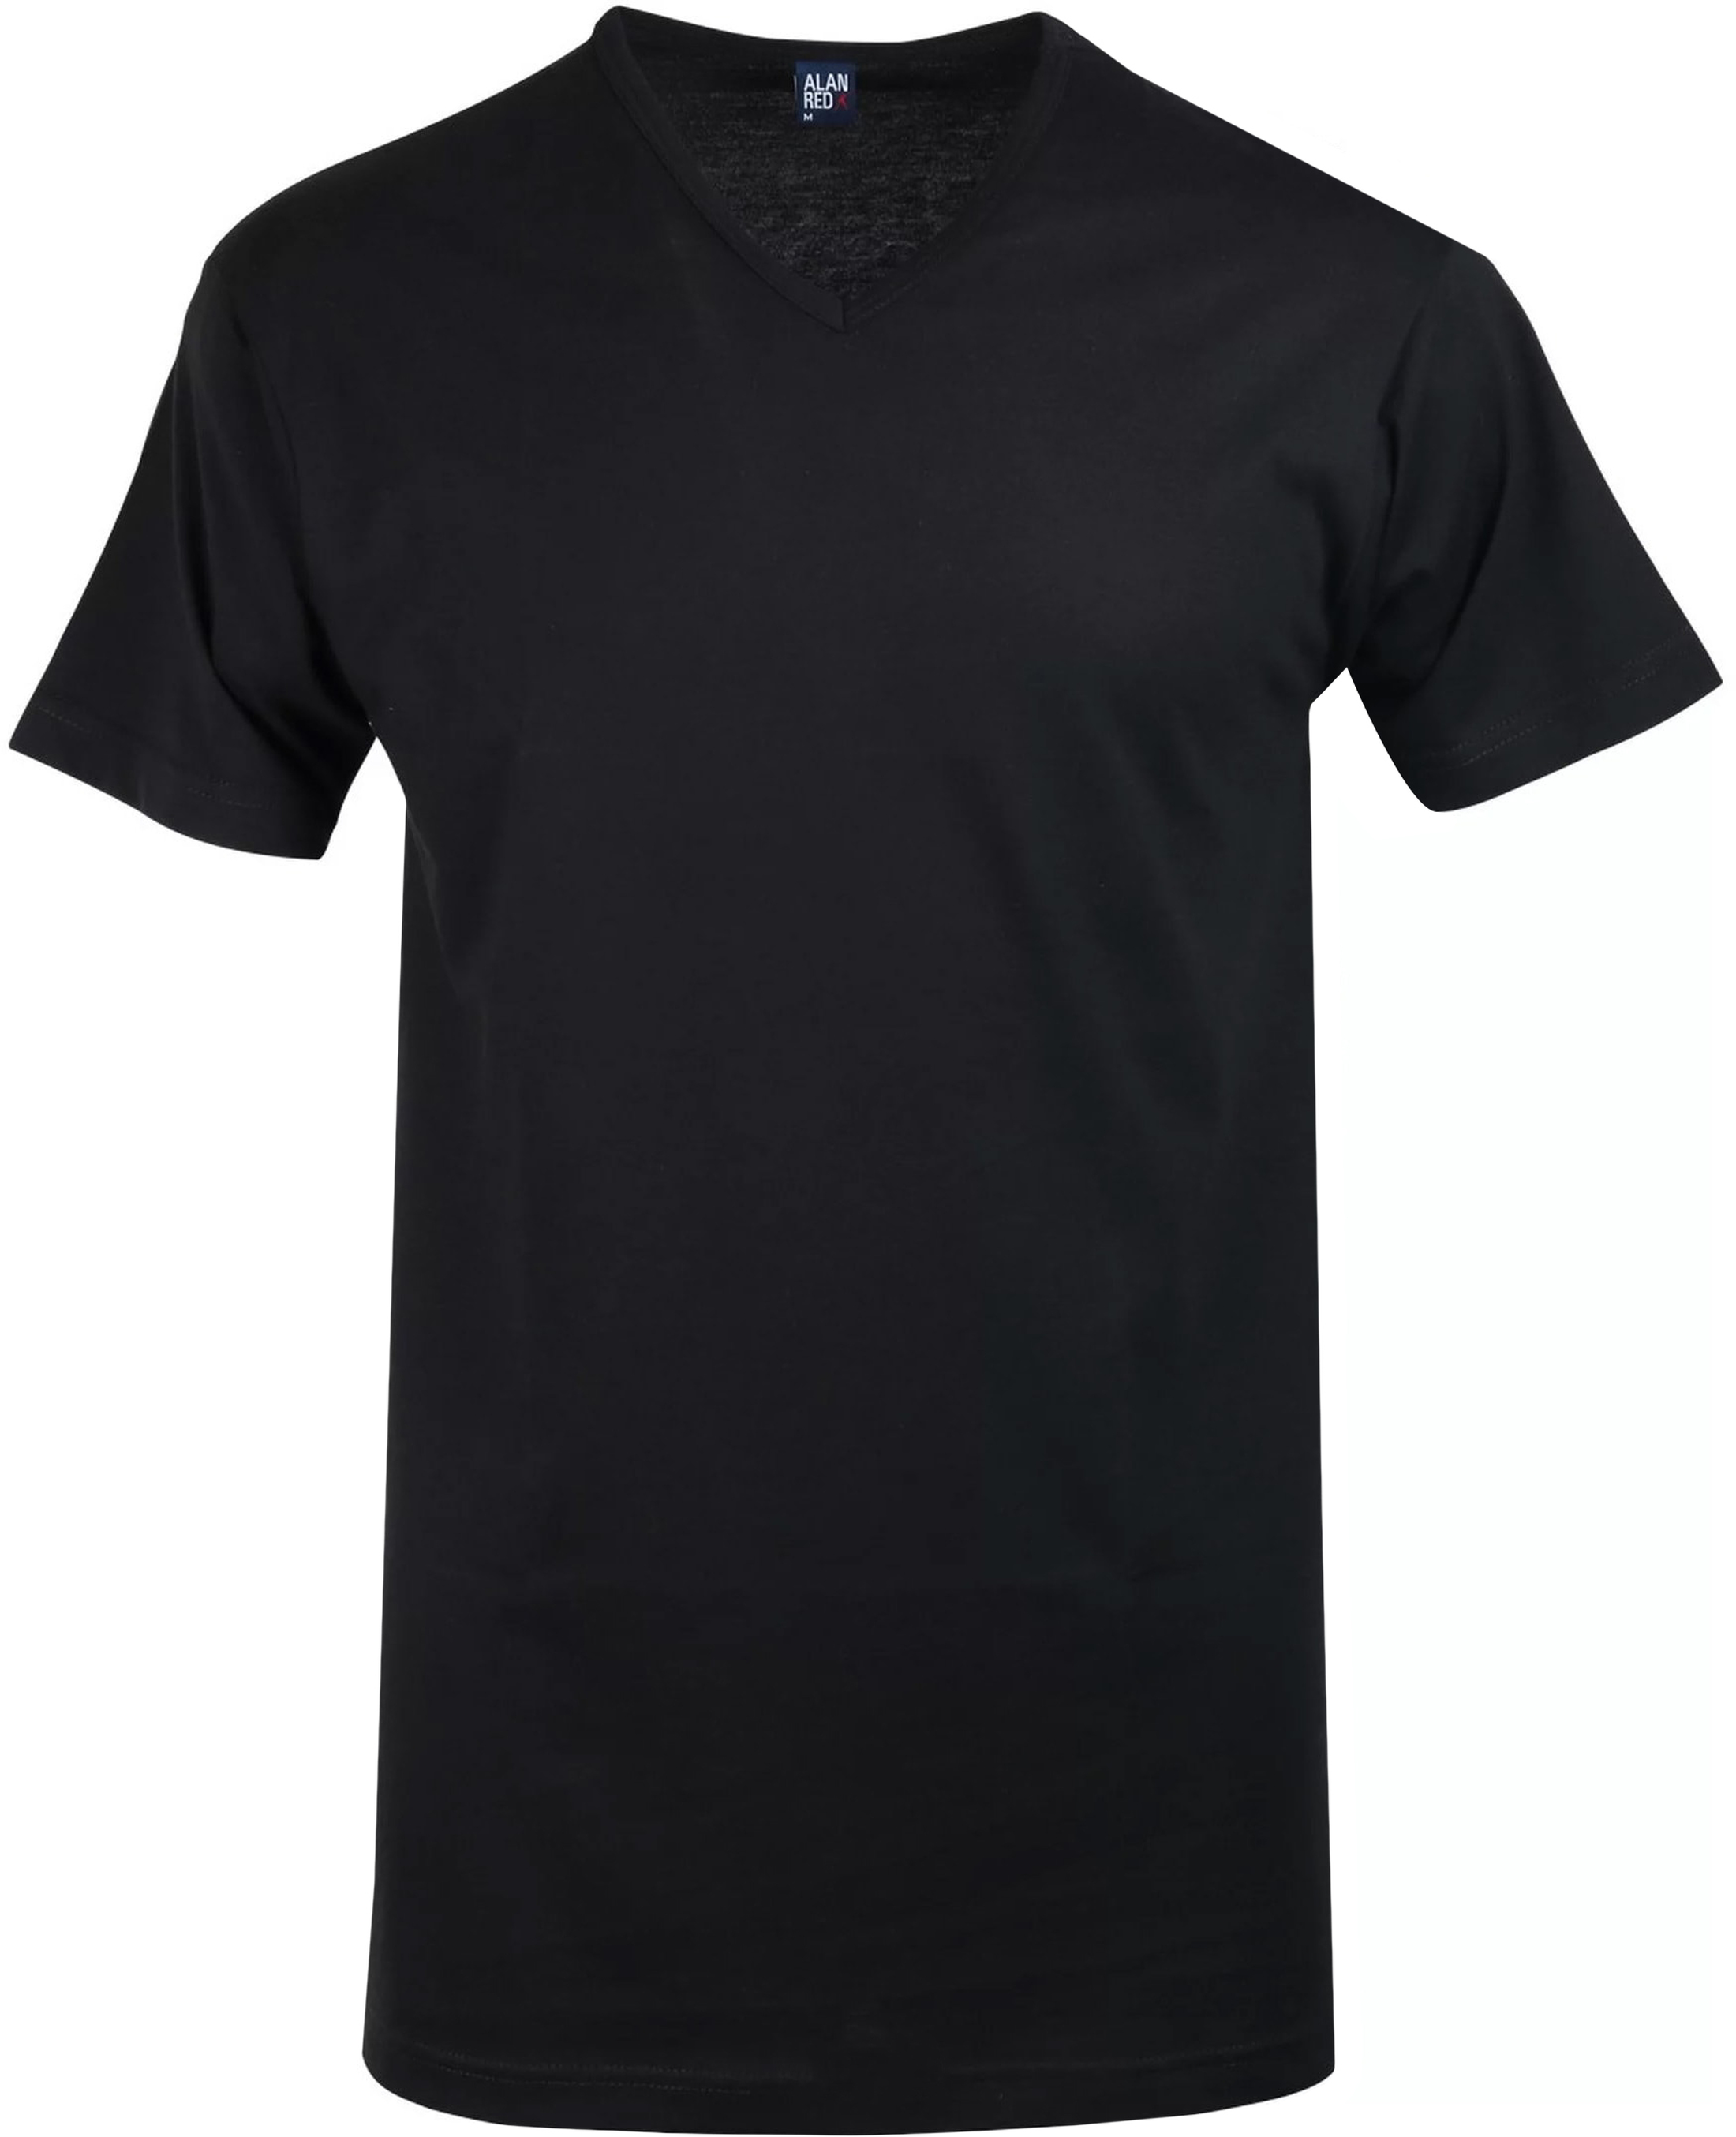 Alan Red Vermont T-Shirt V-Hals Zwart (1Pack) foto 0